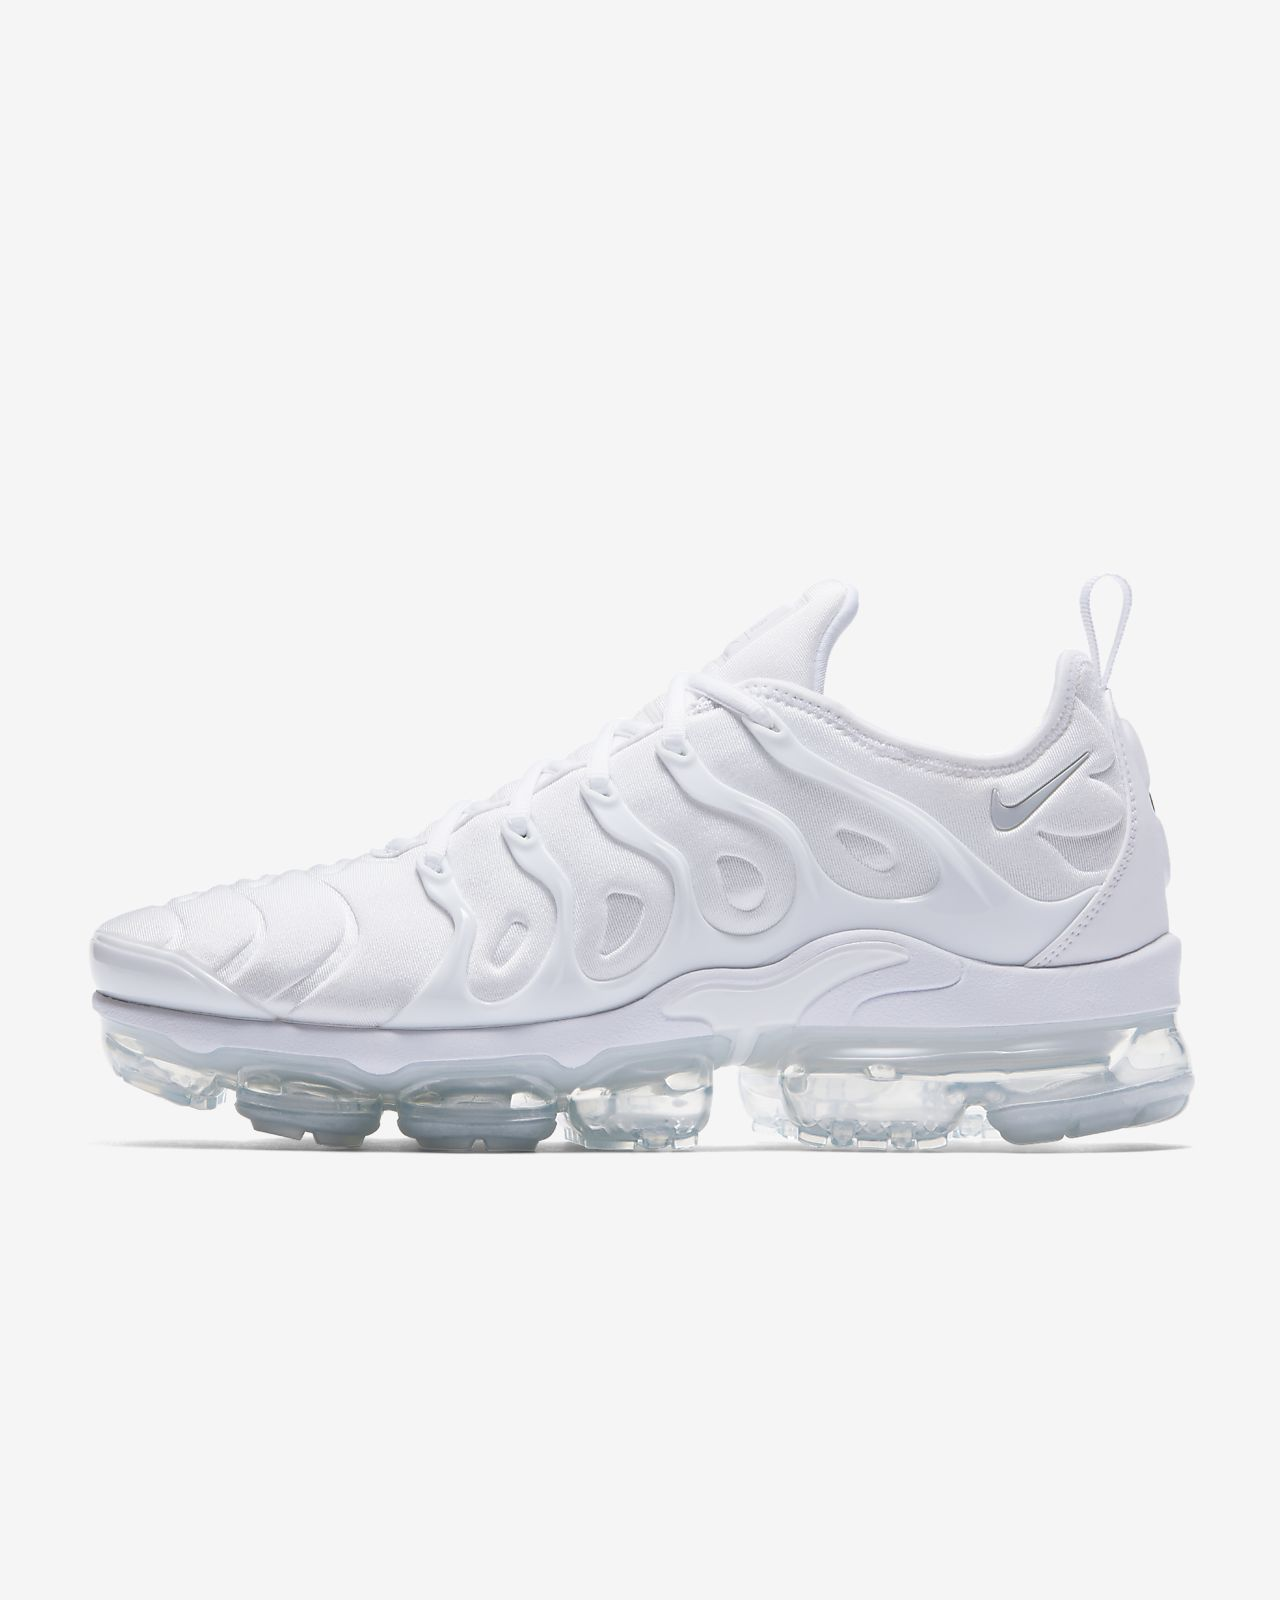 2eca97d1482d0 Nike Air VaporMax Plus Men s Shoe. Nike.com DK